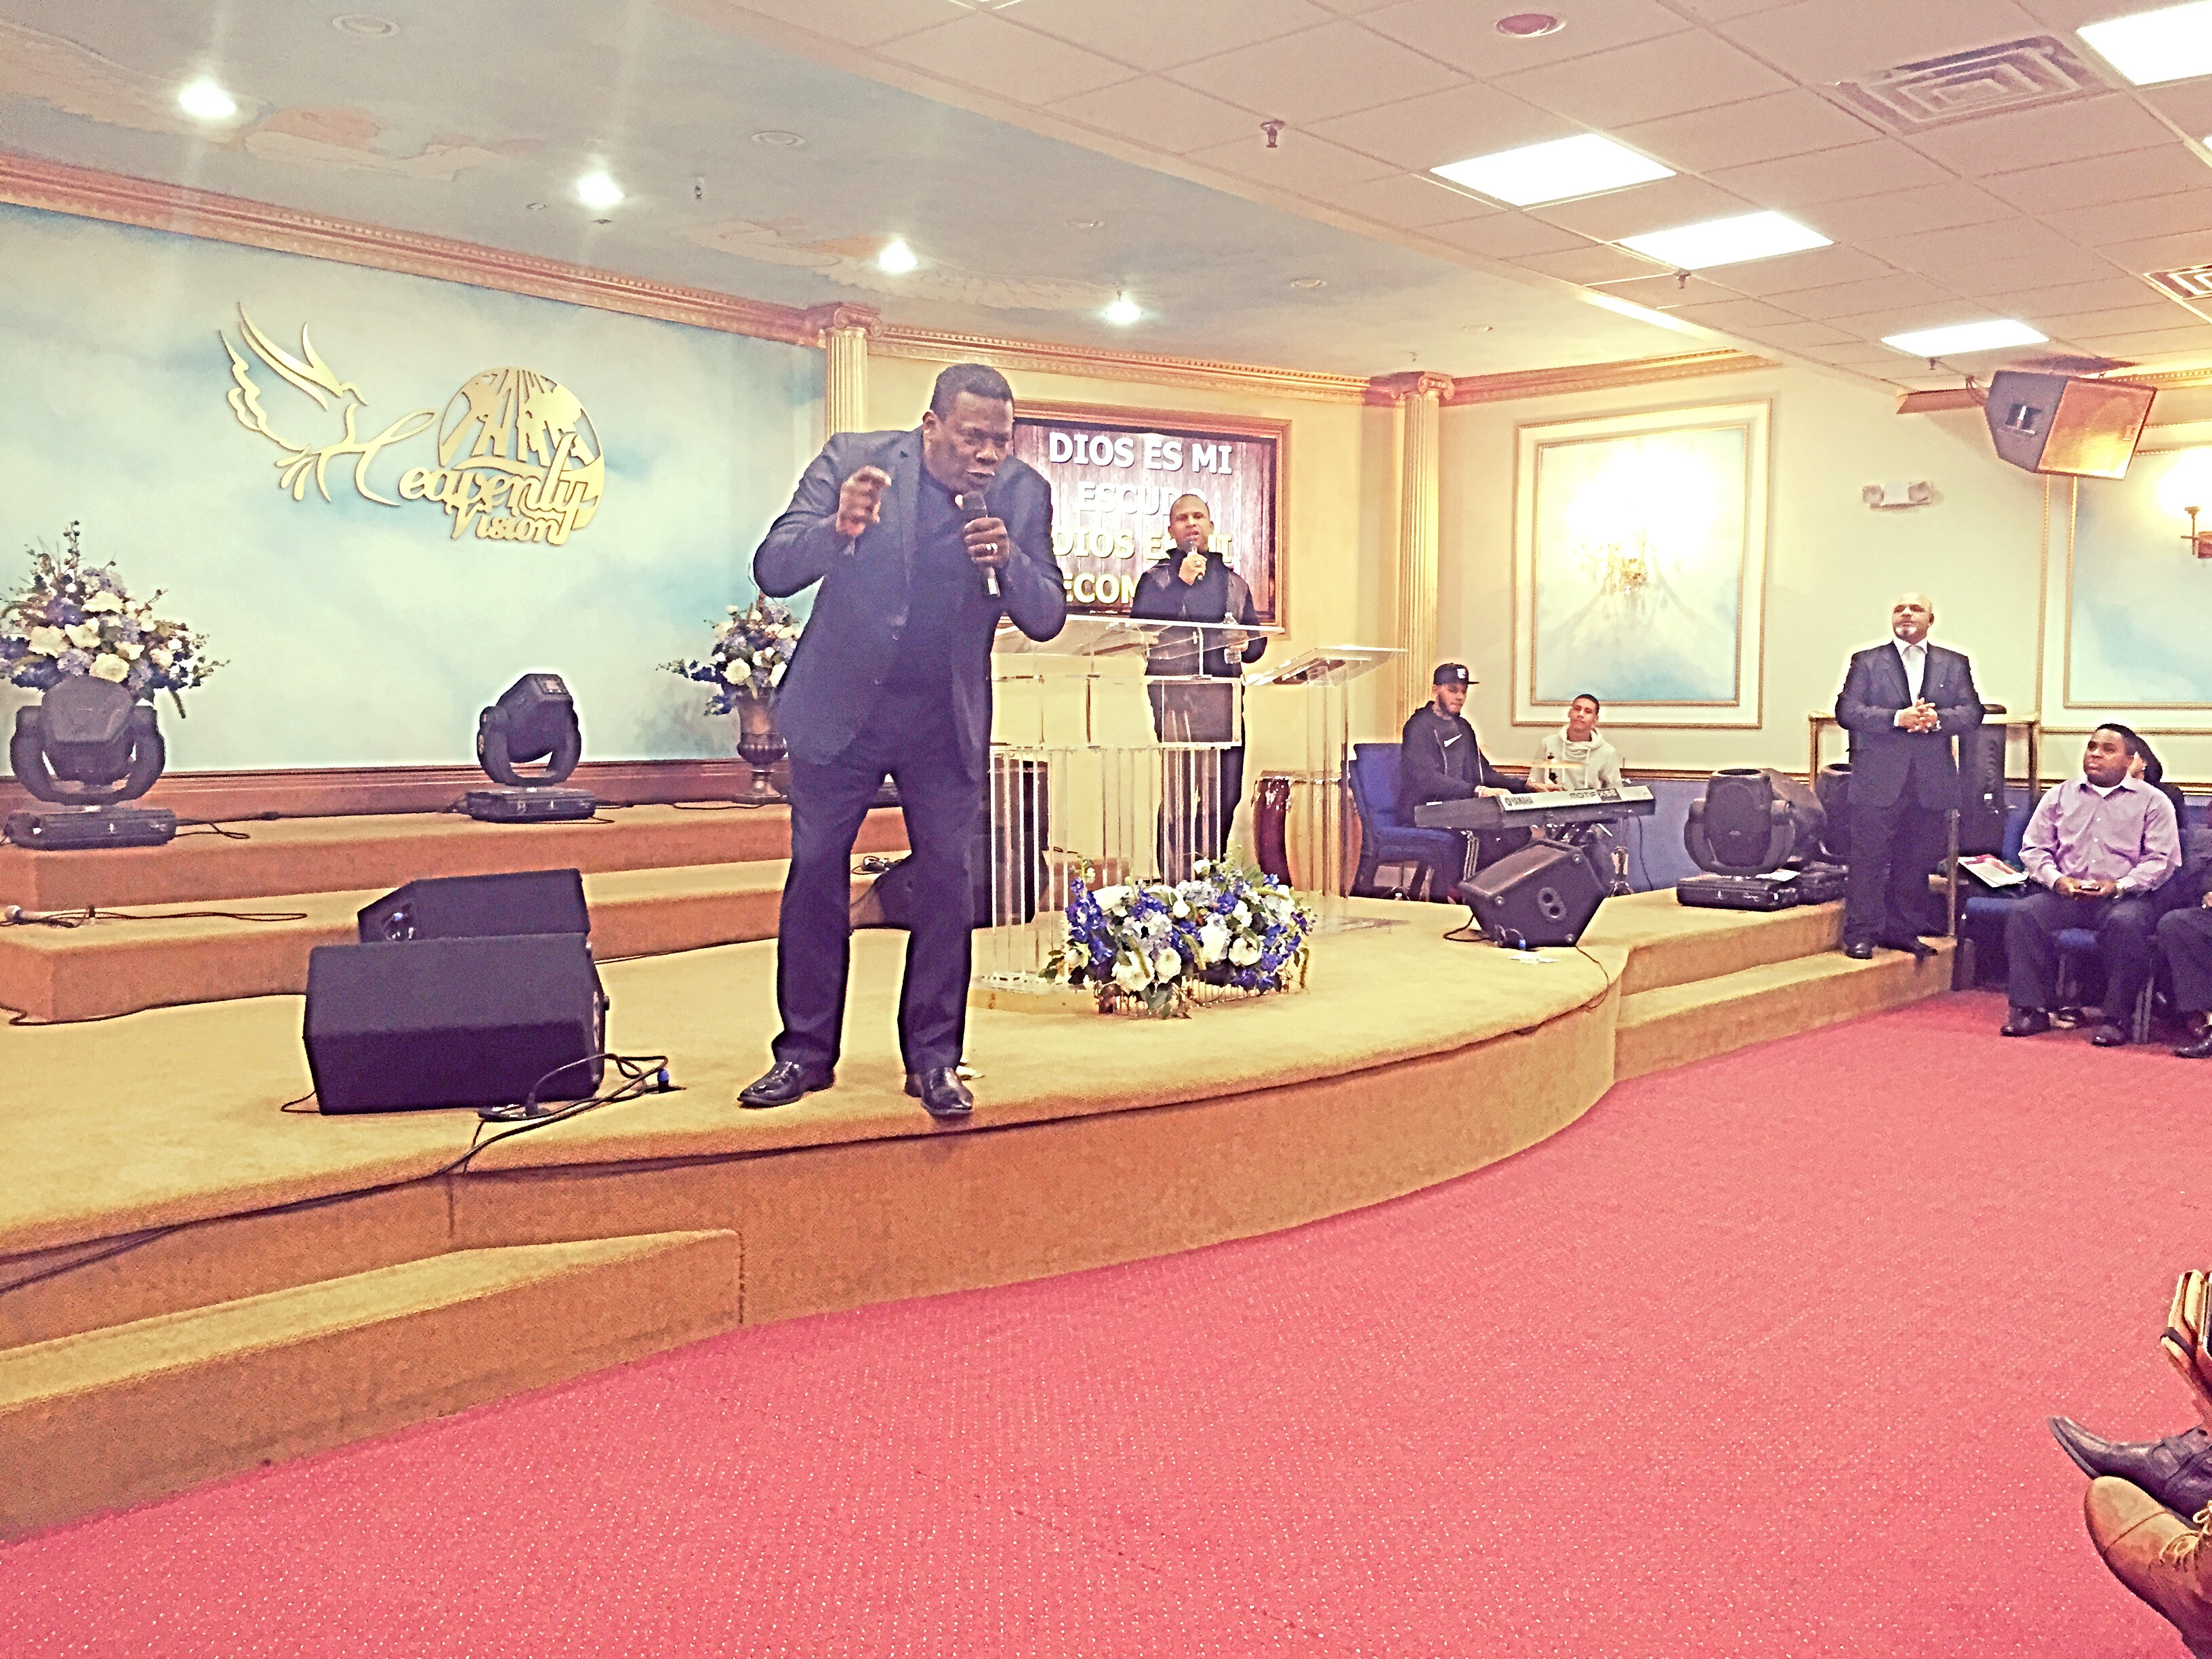 Apostle Marcelino Sojo preaching in the annual leader's retreat